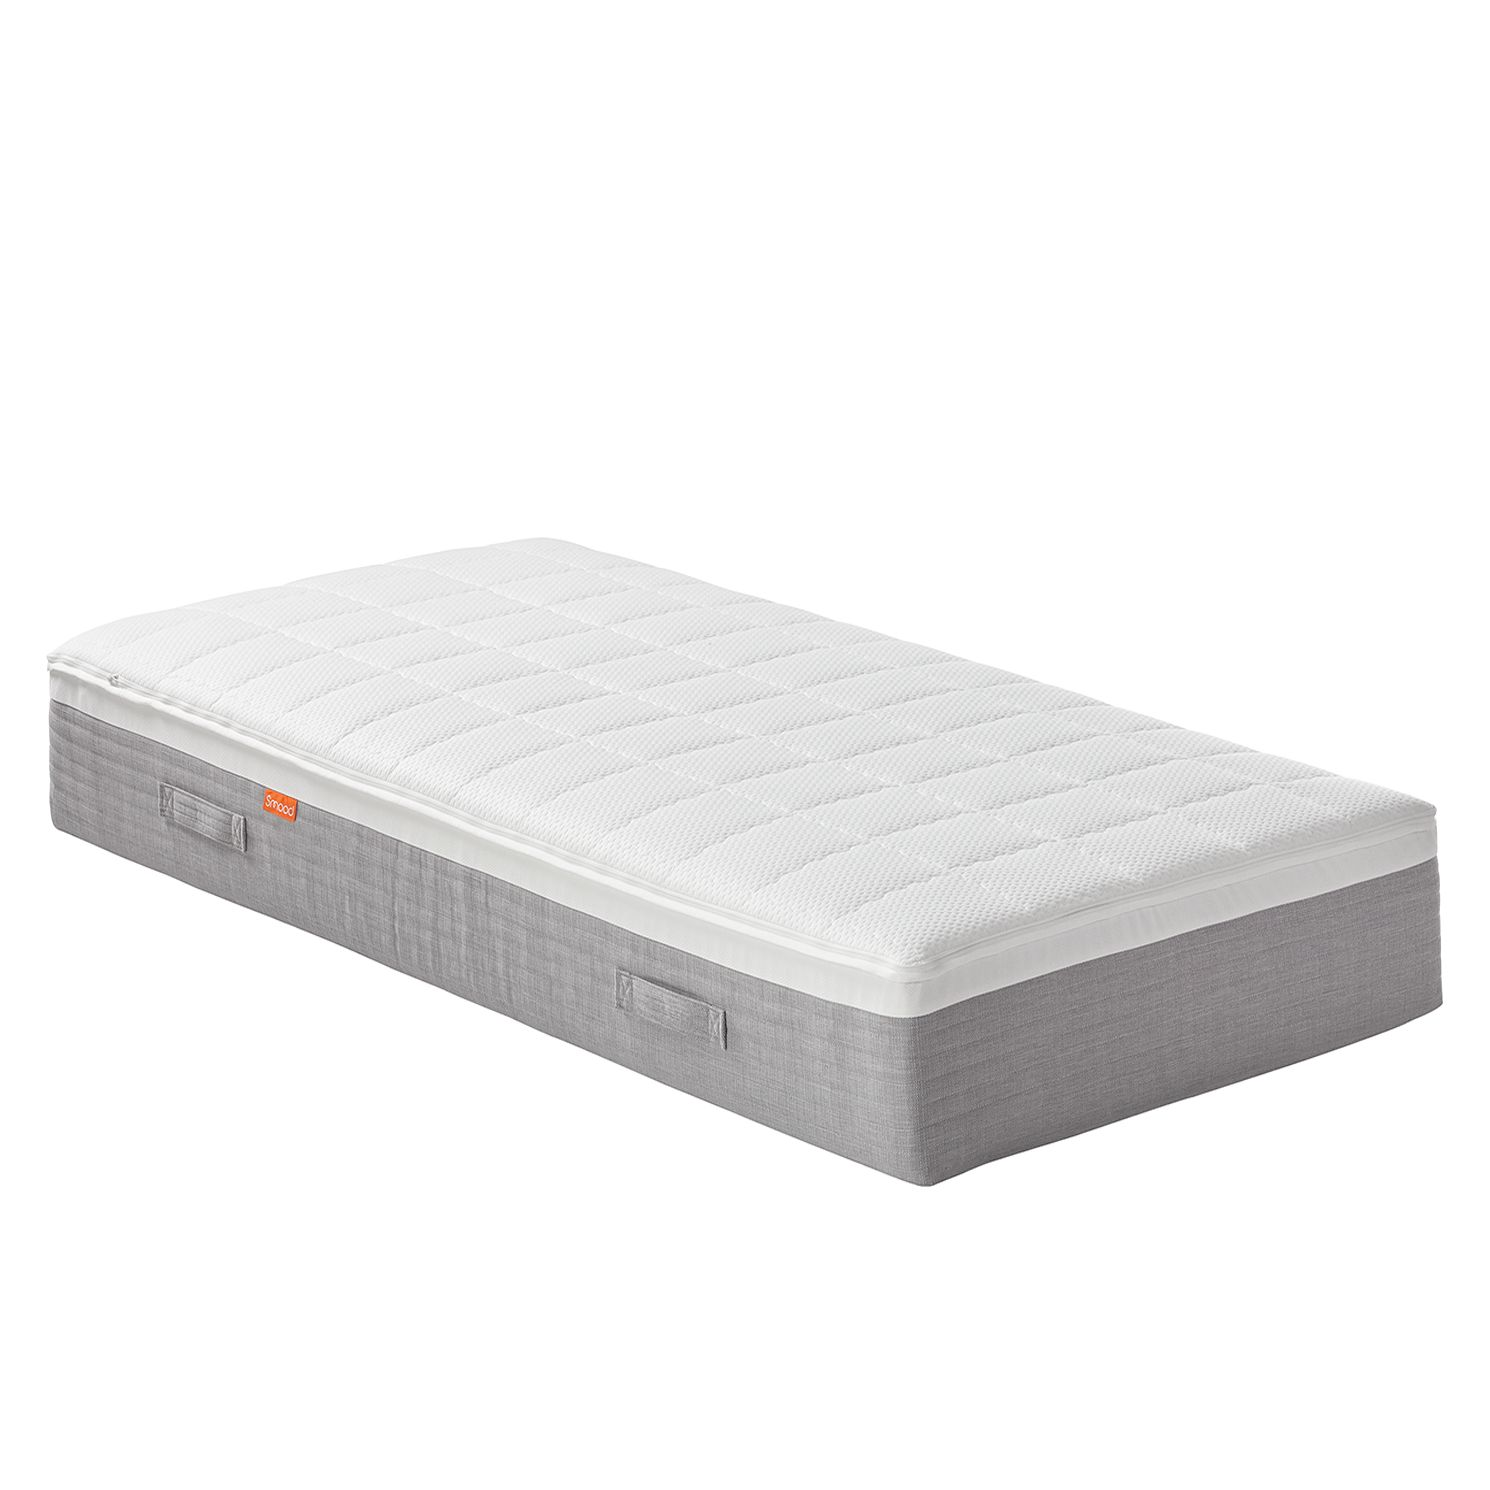 Matelas boxspring Smood Select - 120 x 200cm, Smood